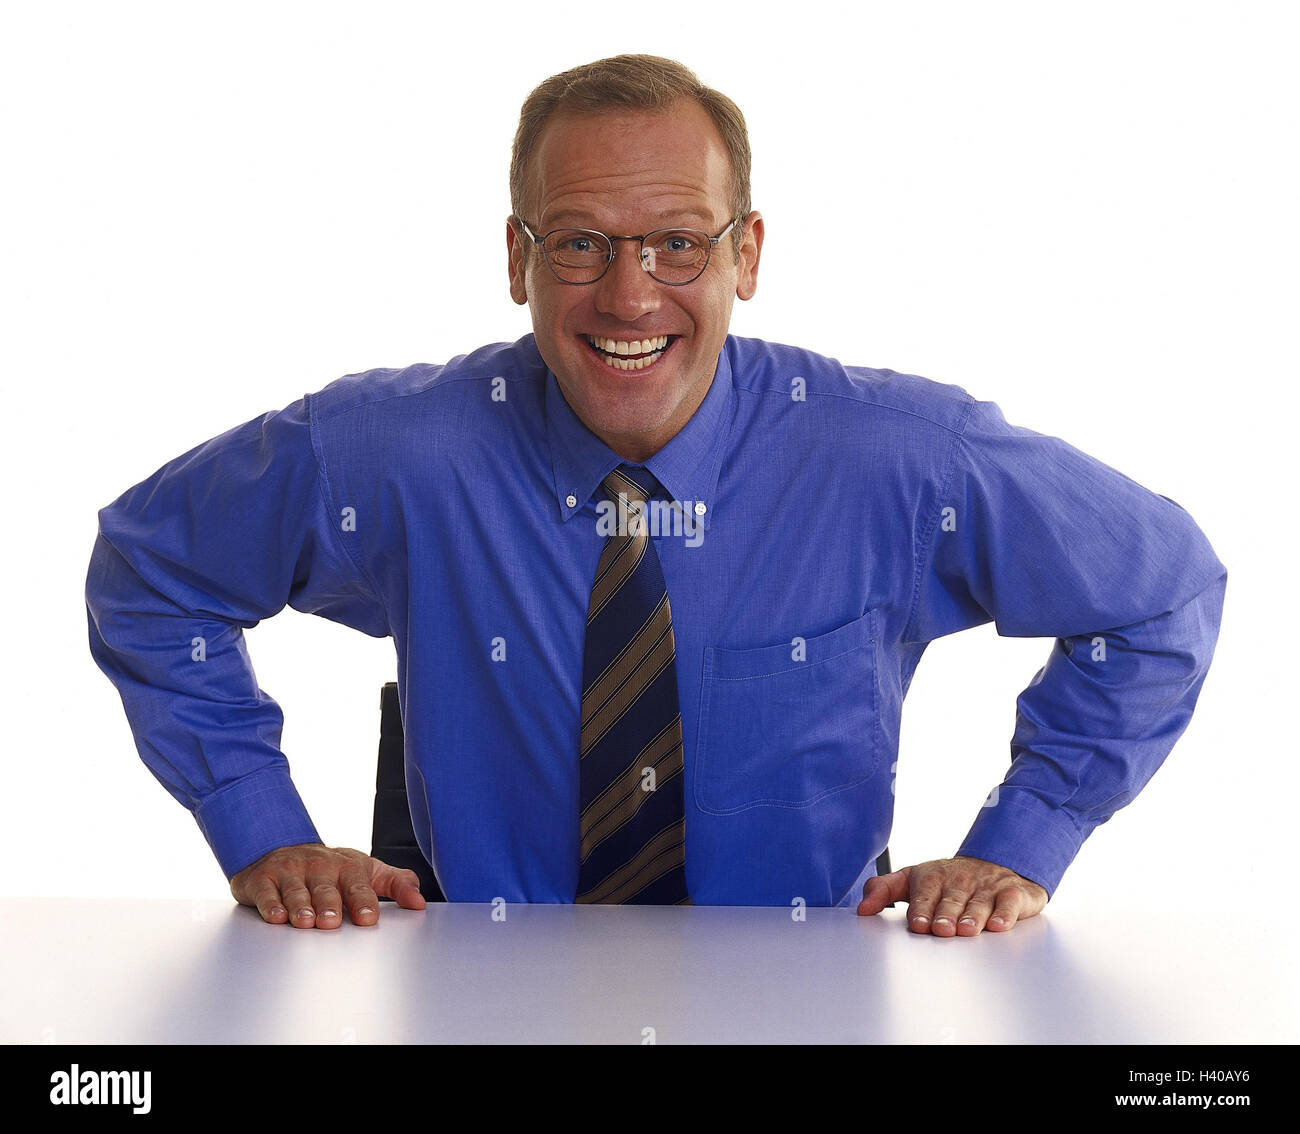 Man, glasses, shirt, tie, sit, rest on, laugh, decided, determination Men, businessman, manager, studio, cut out, - Stock Image